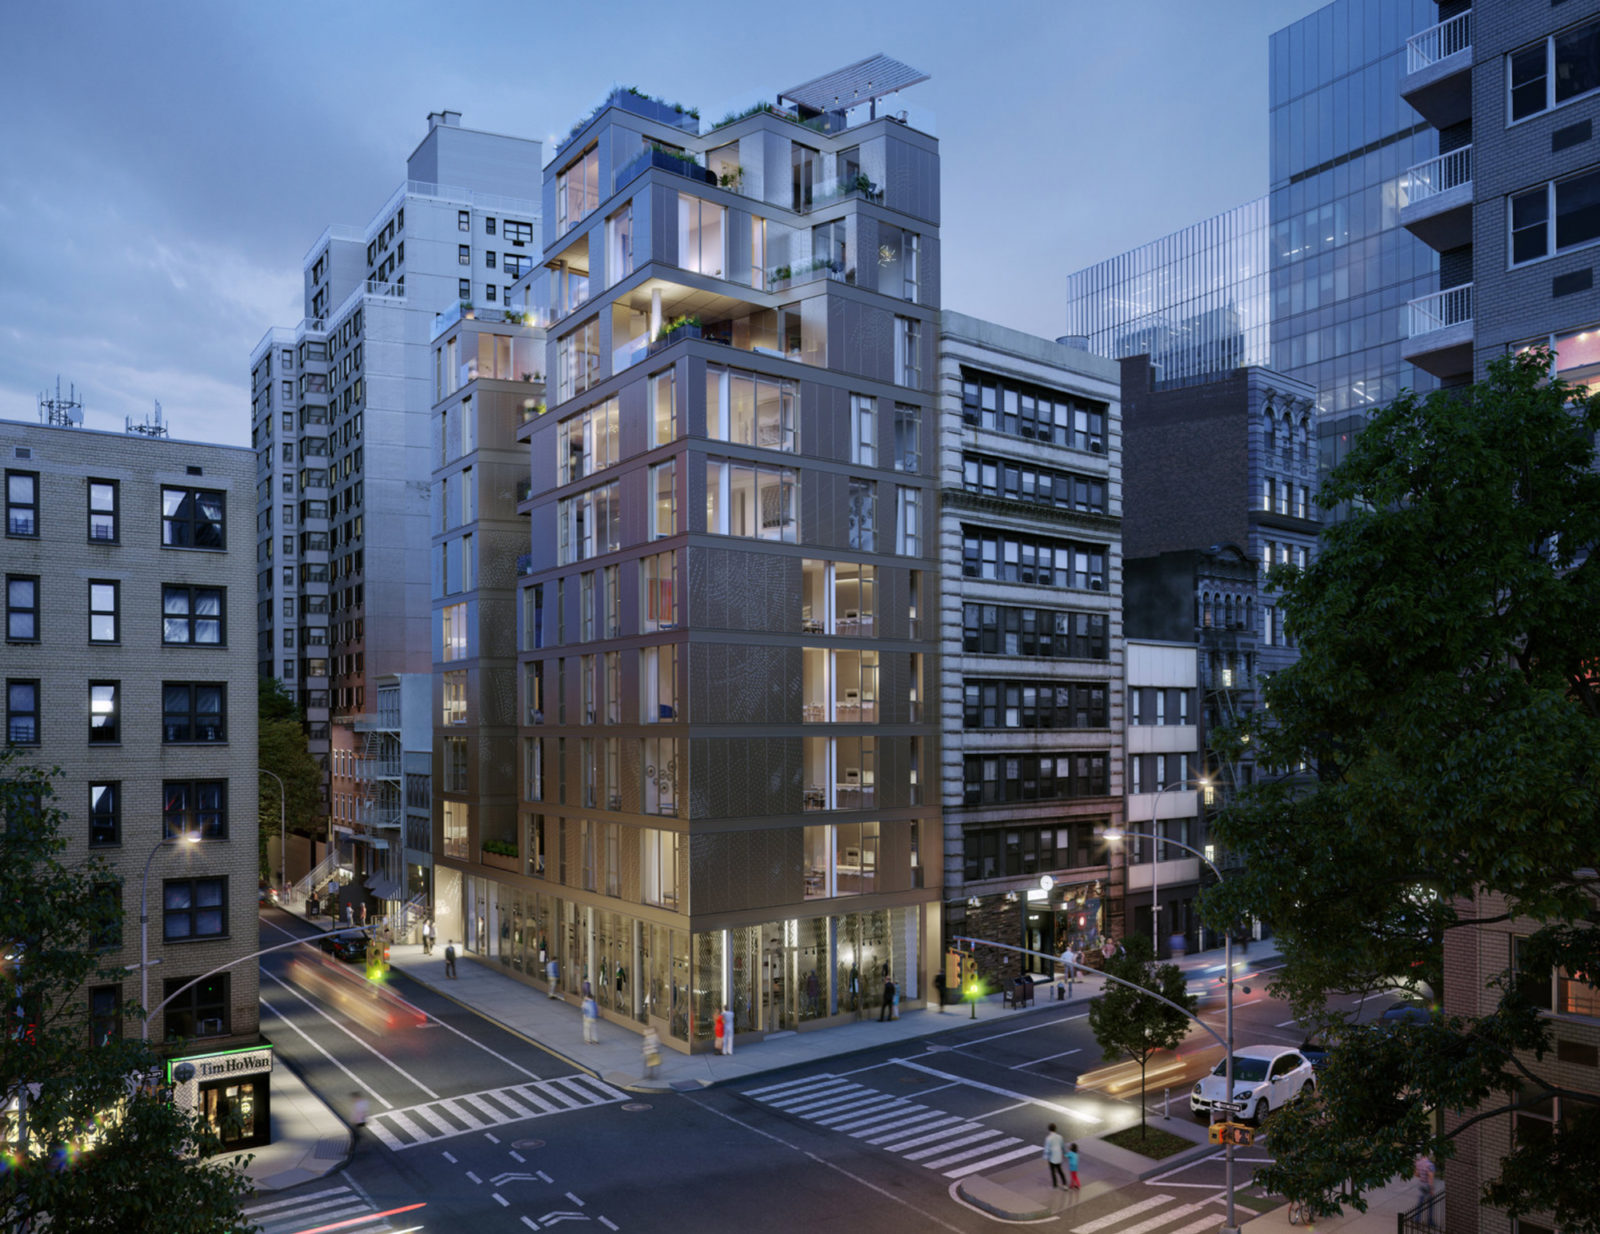 80 East 10th Street, rendering by MOSO Studio